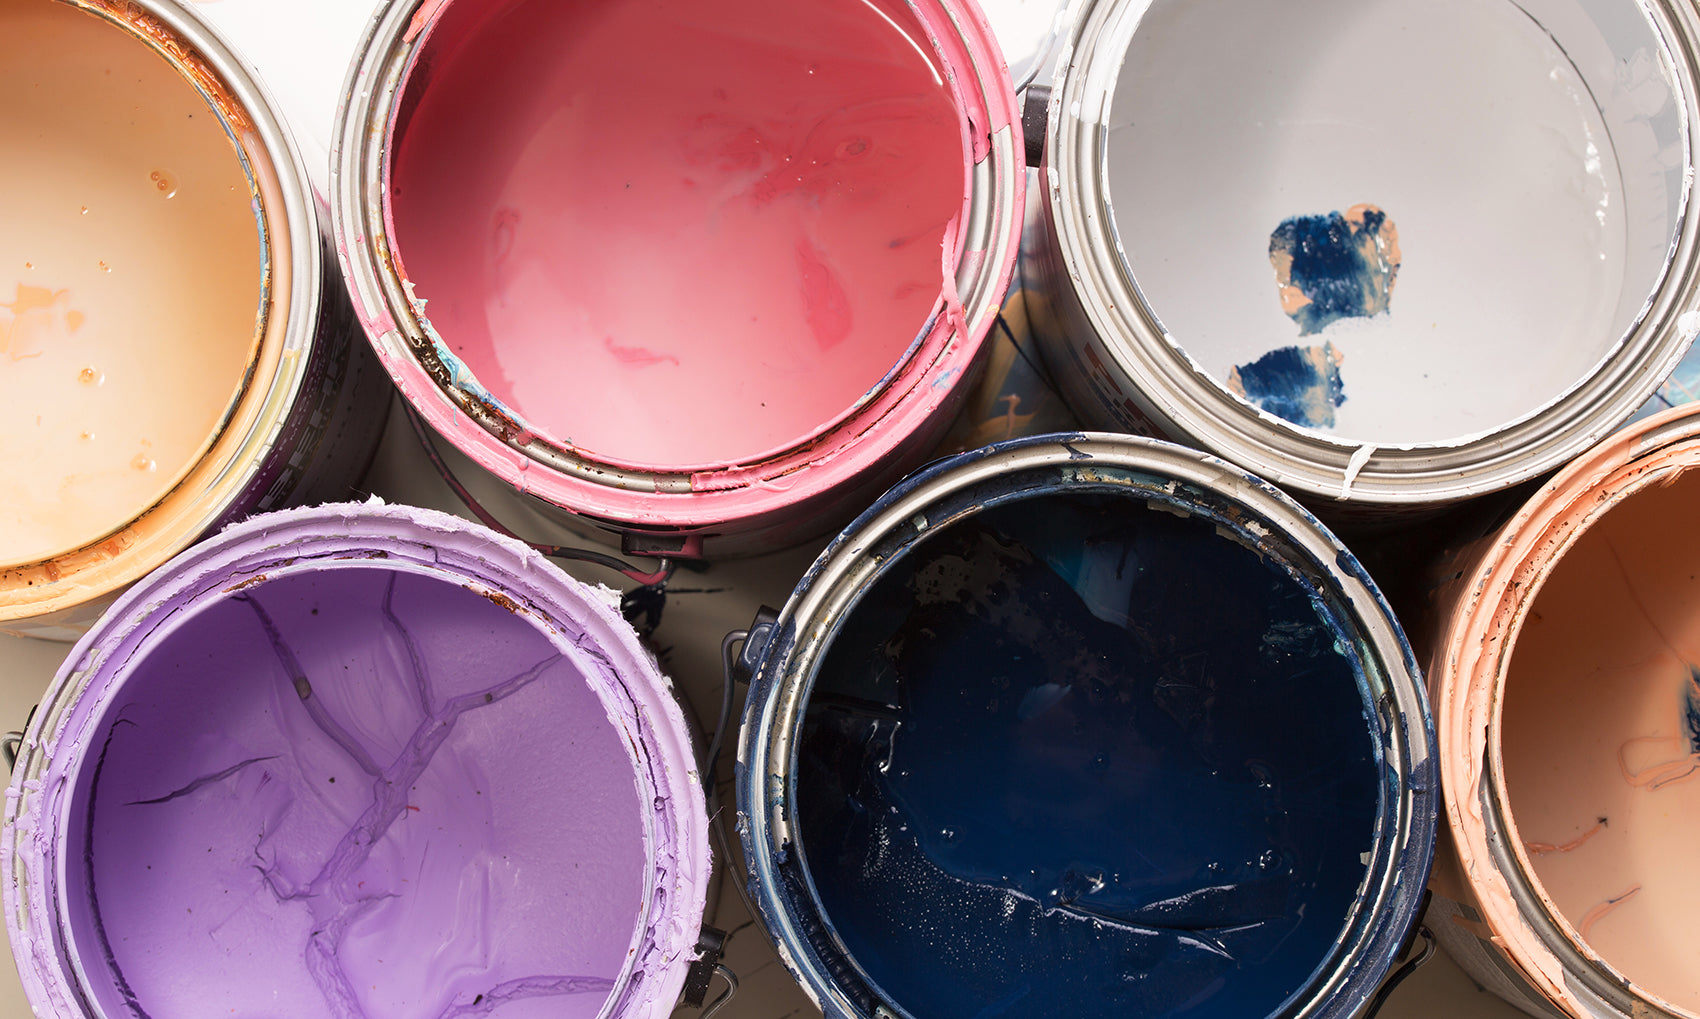 cans of paint for recycling